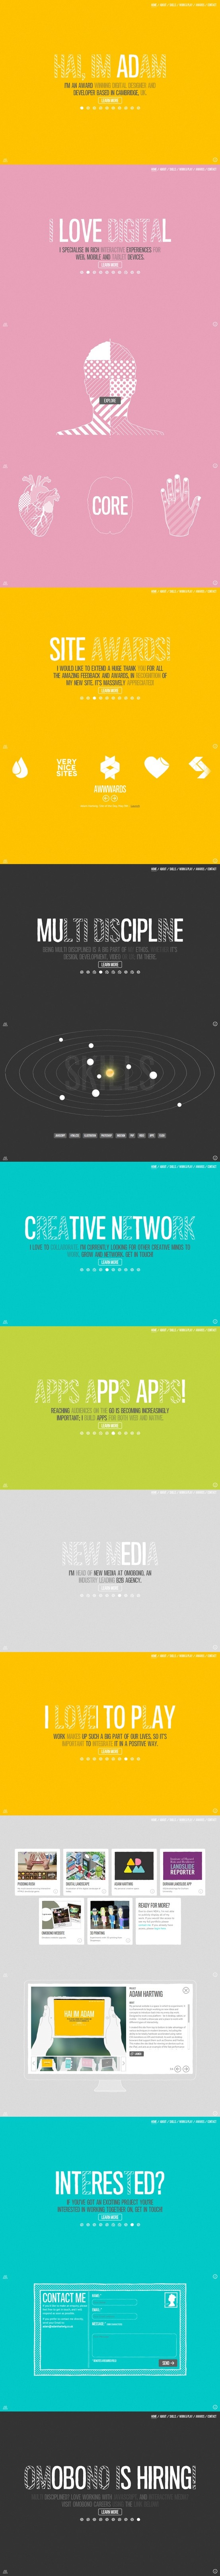 Adam Hartwig 9 May 2013 http://www.awwwards.com/web-design-awards/adam-hartwig #webdesign #inspiration #UI #Clean #Minimal #Flexible #Illustration #Animation #HTML5 #White #Yellow